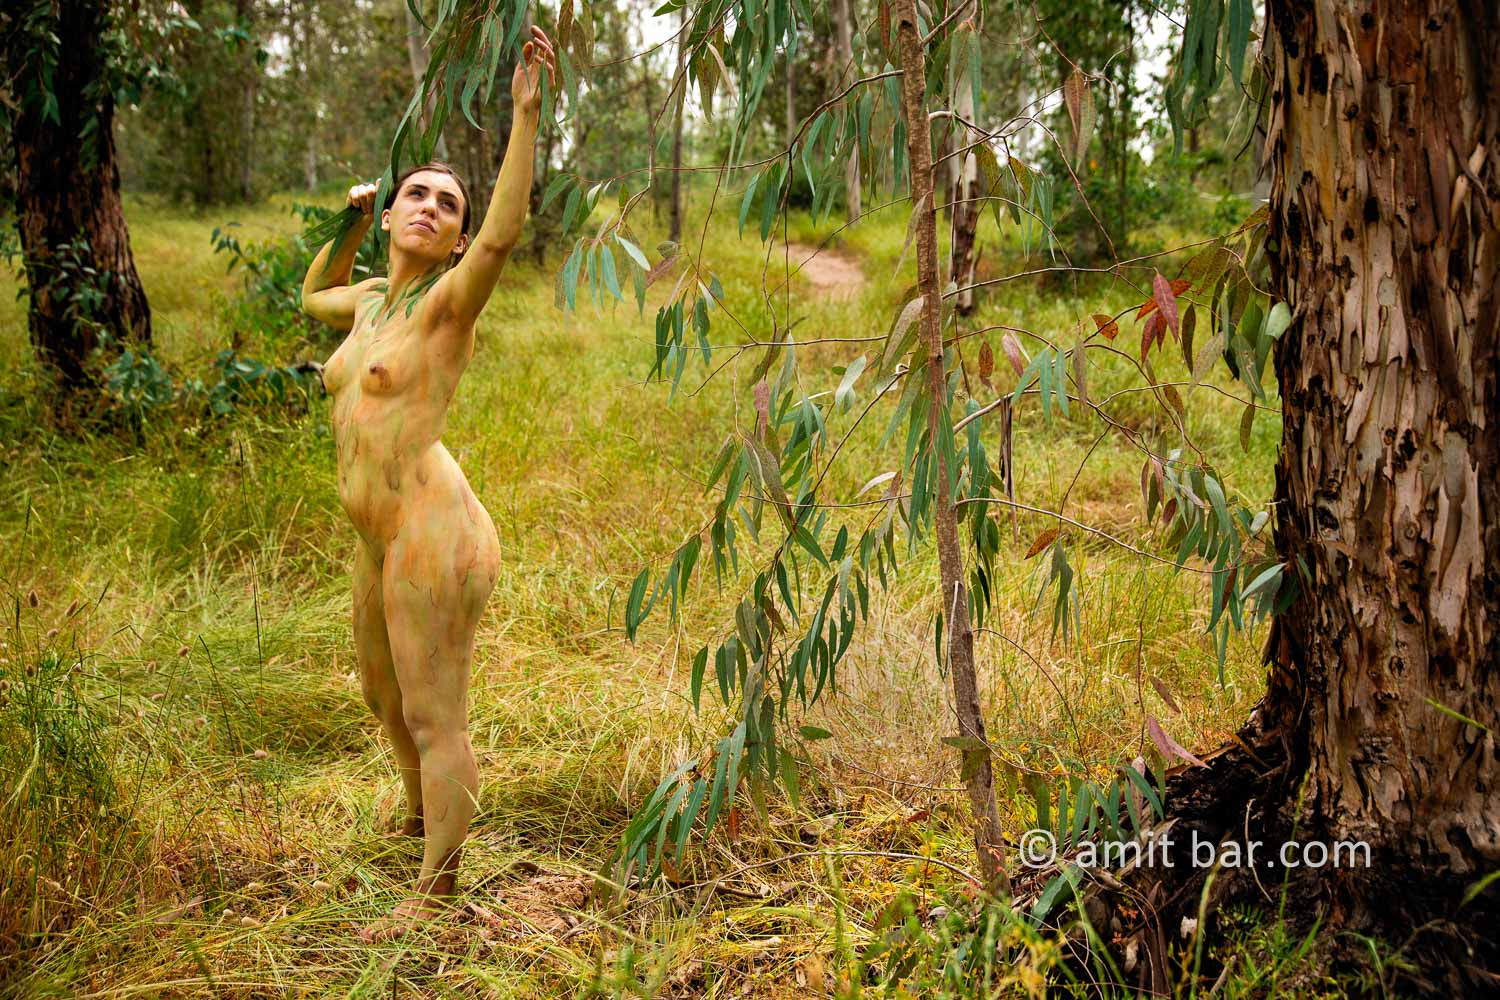 Eucalyptus grove II: Body-painted model in eucalyptus grove